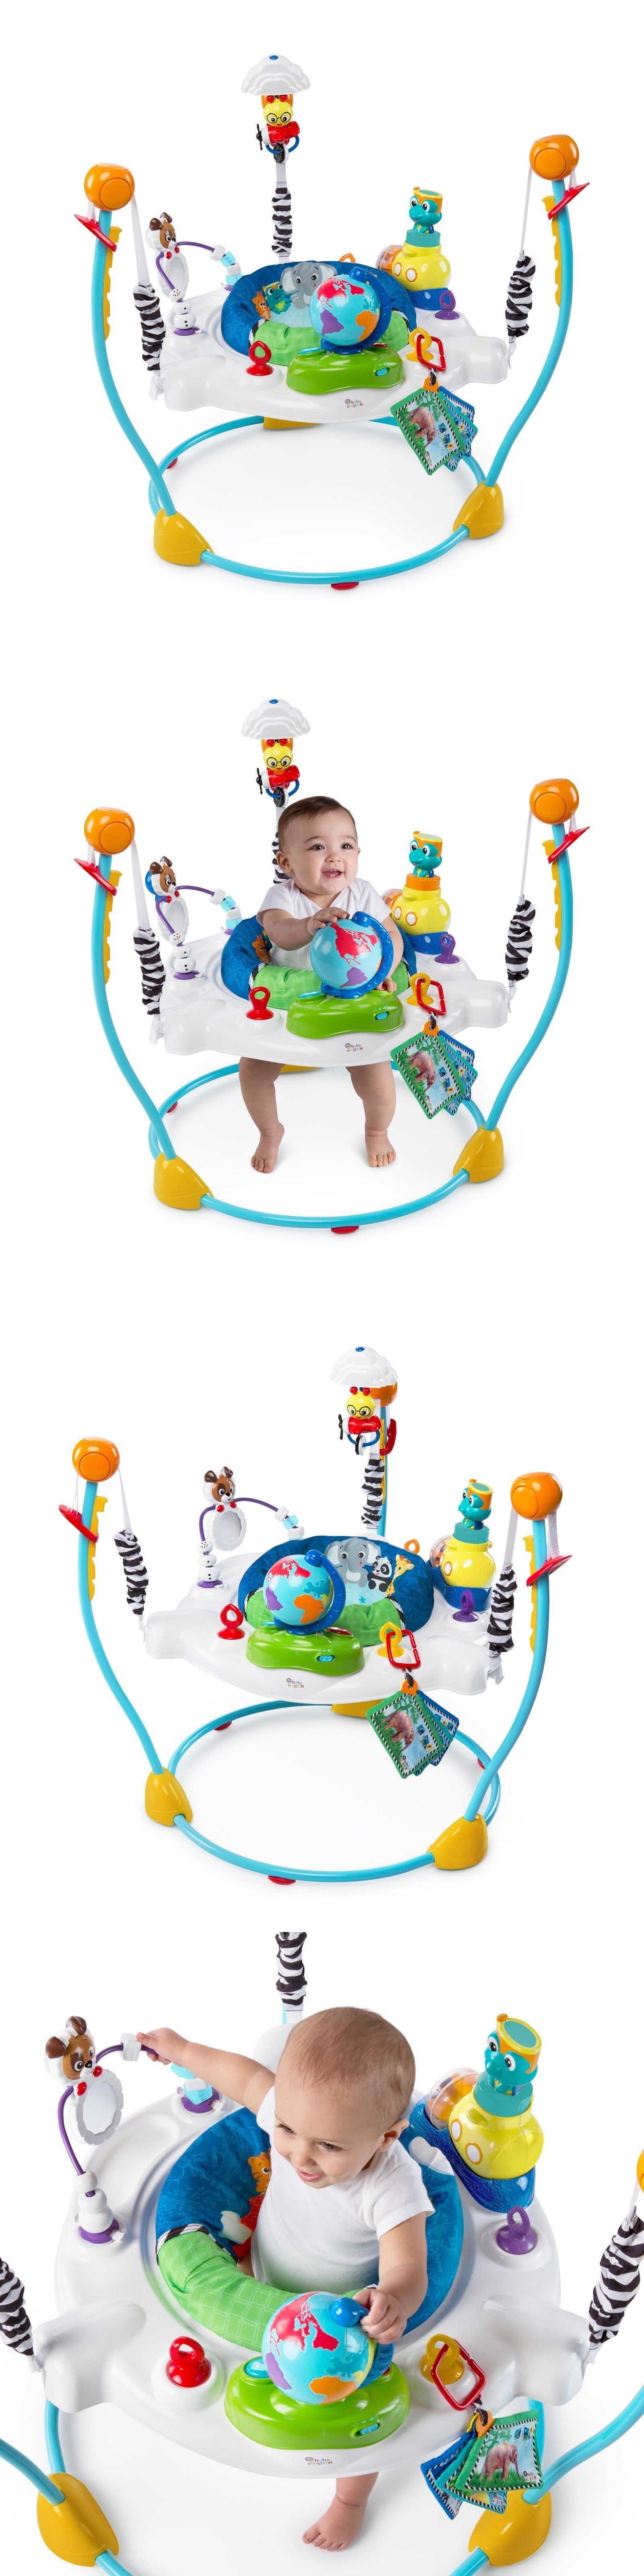 5639e583c0ff Baby Einstein Journey Of Discovery Jumper 3 Languages Activity Seat ...